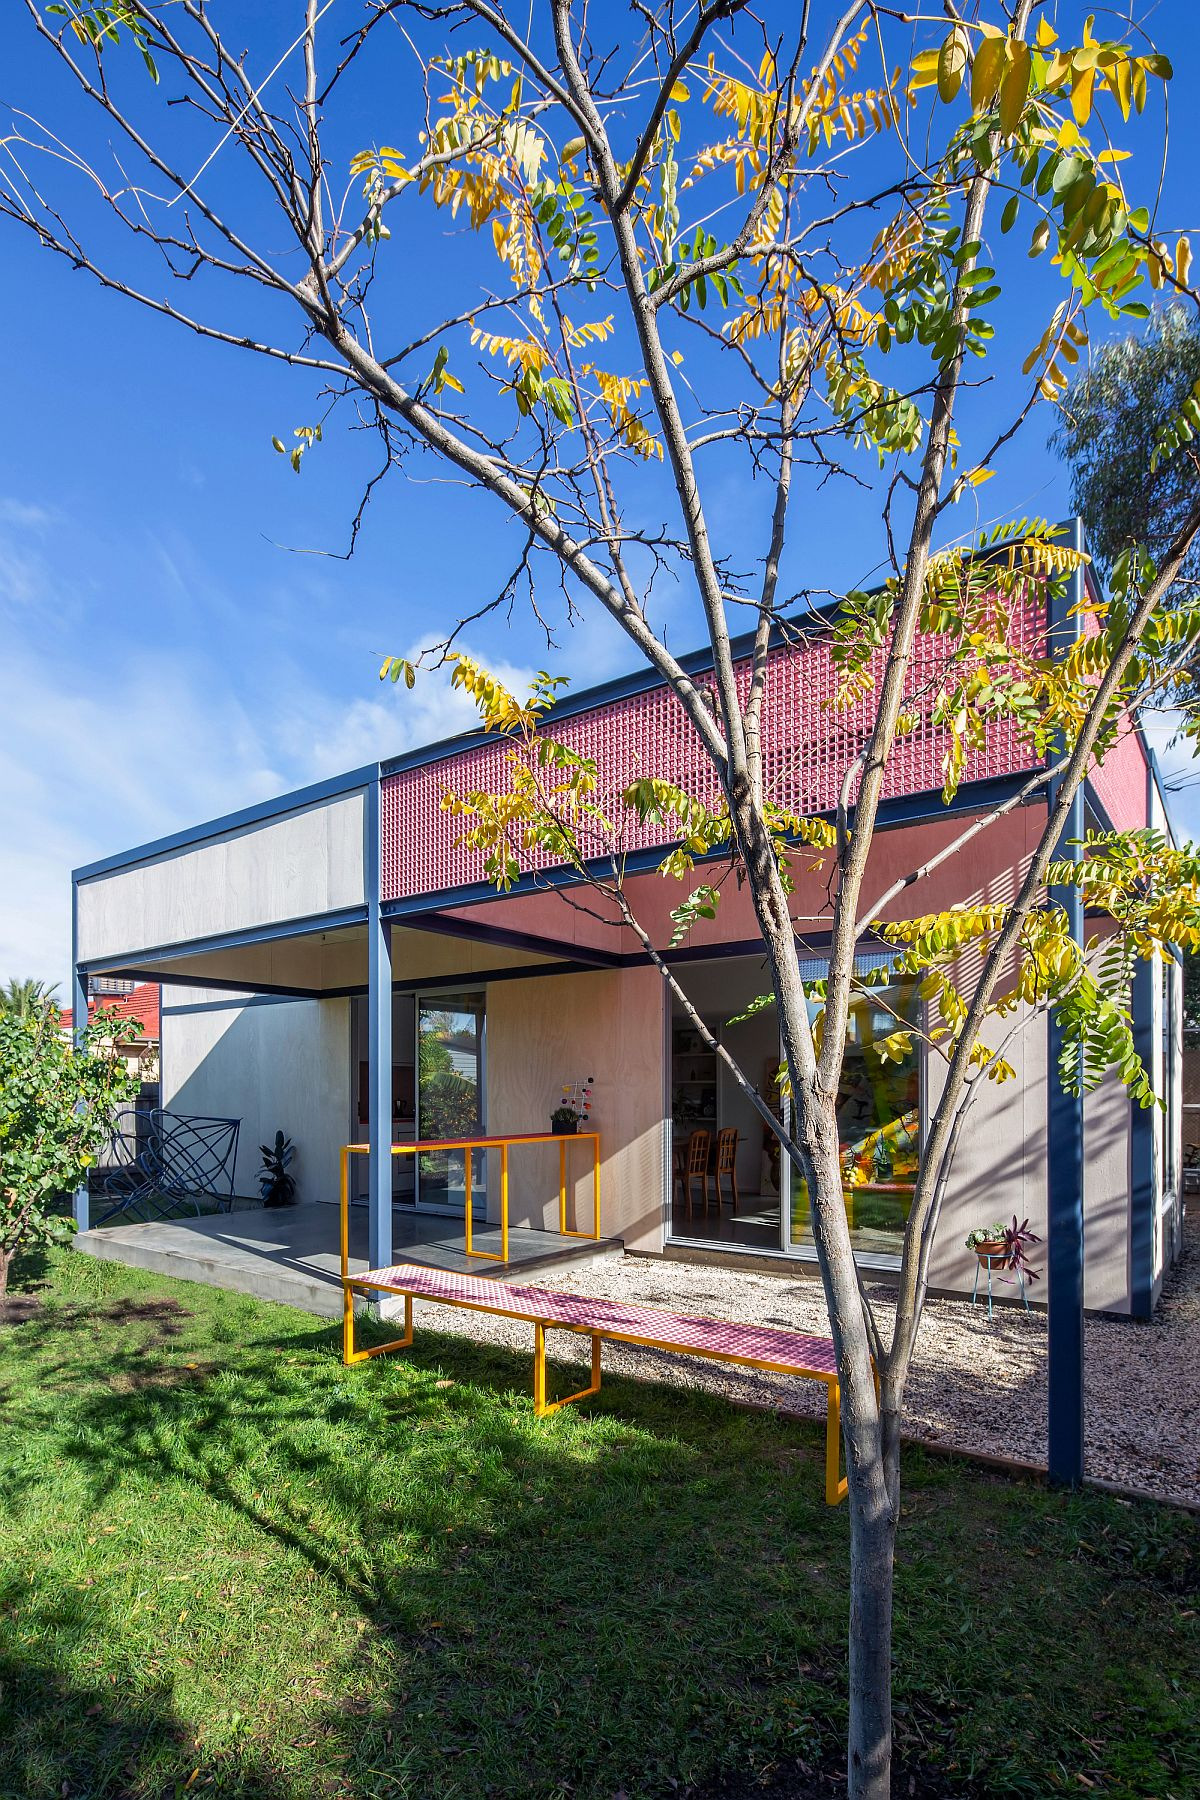 Colorful-and-modern-pergola-structure-also-offers-smart-functionality-to-the-home-87367